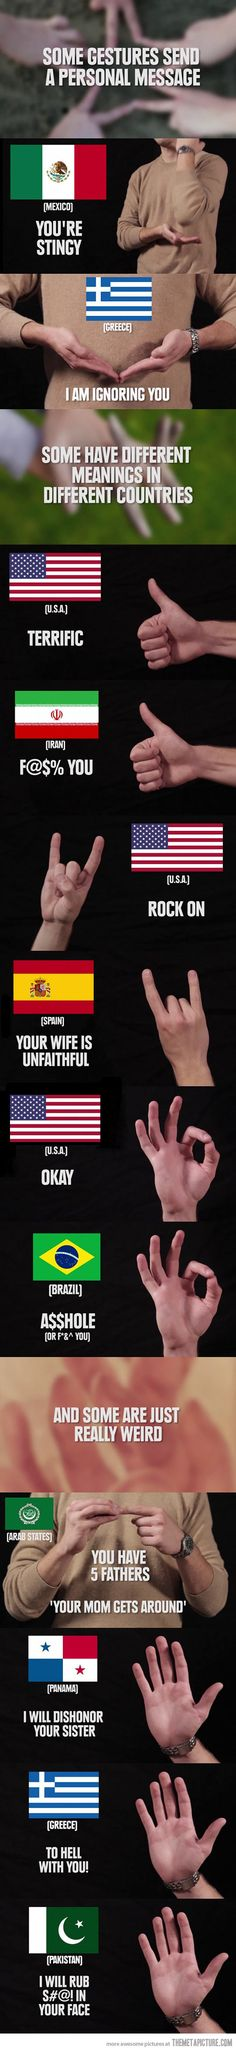 Hand gestures around the world…